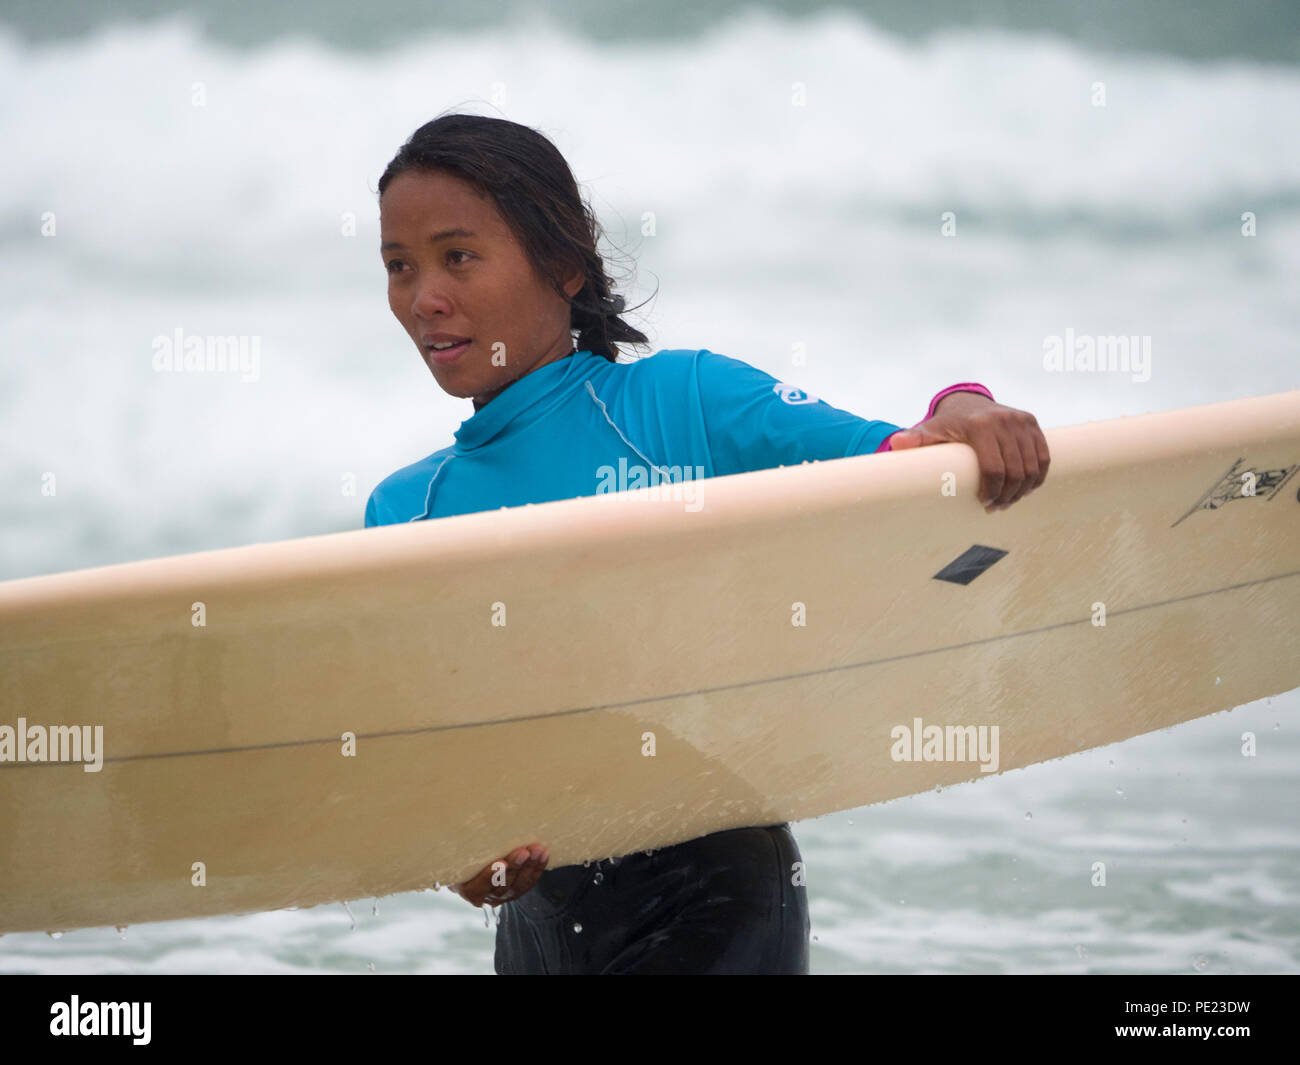 Boardmasters surf contest, August,11th,2018  Robert Taylor/Alamy Live News.  Newquay, Cornwall, UK. - Stock Image